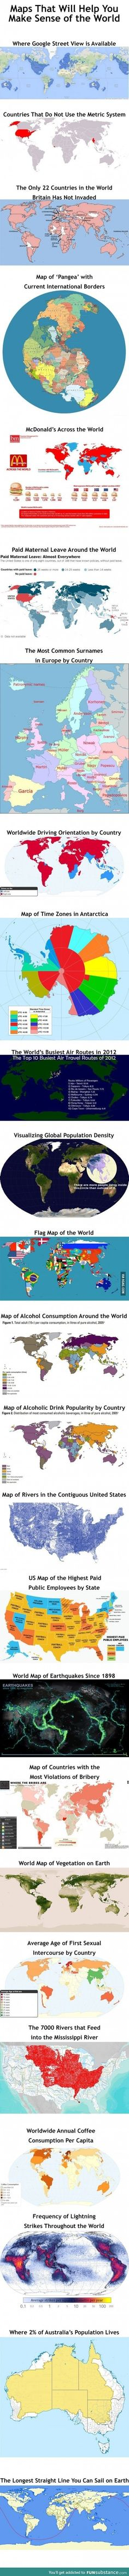 This will help you make sense of the world